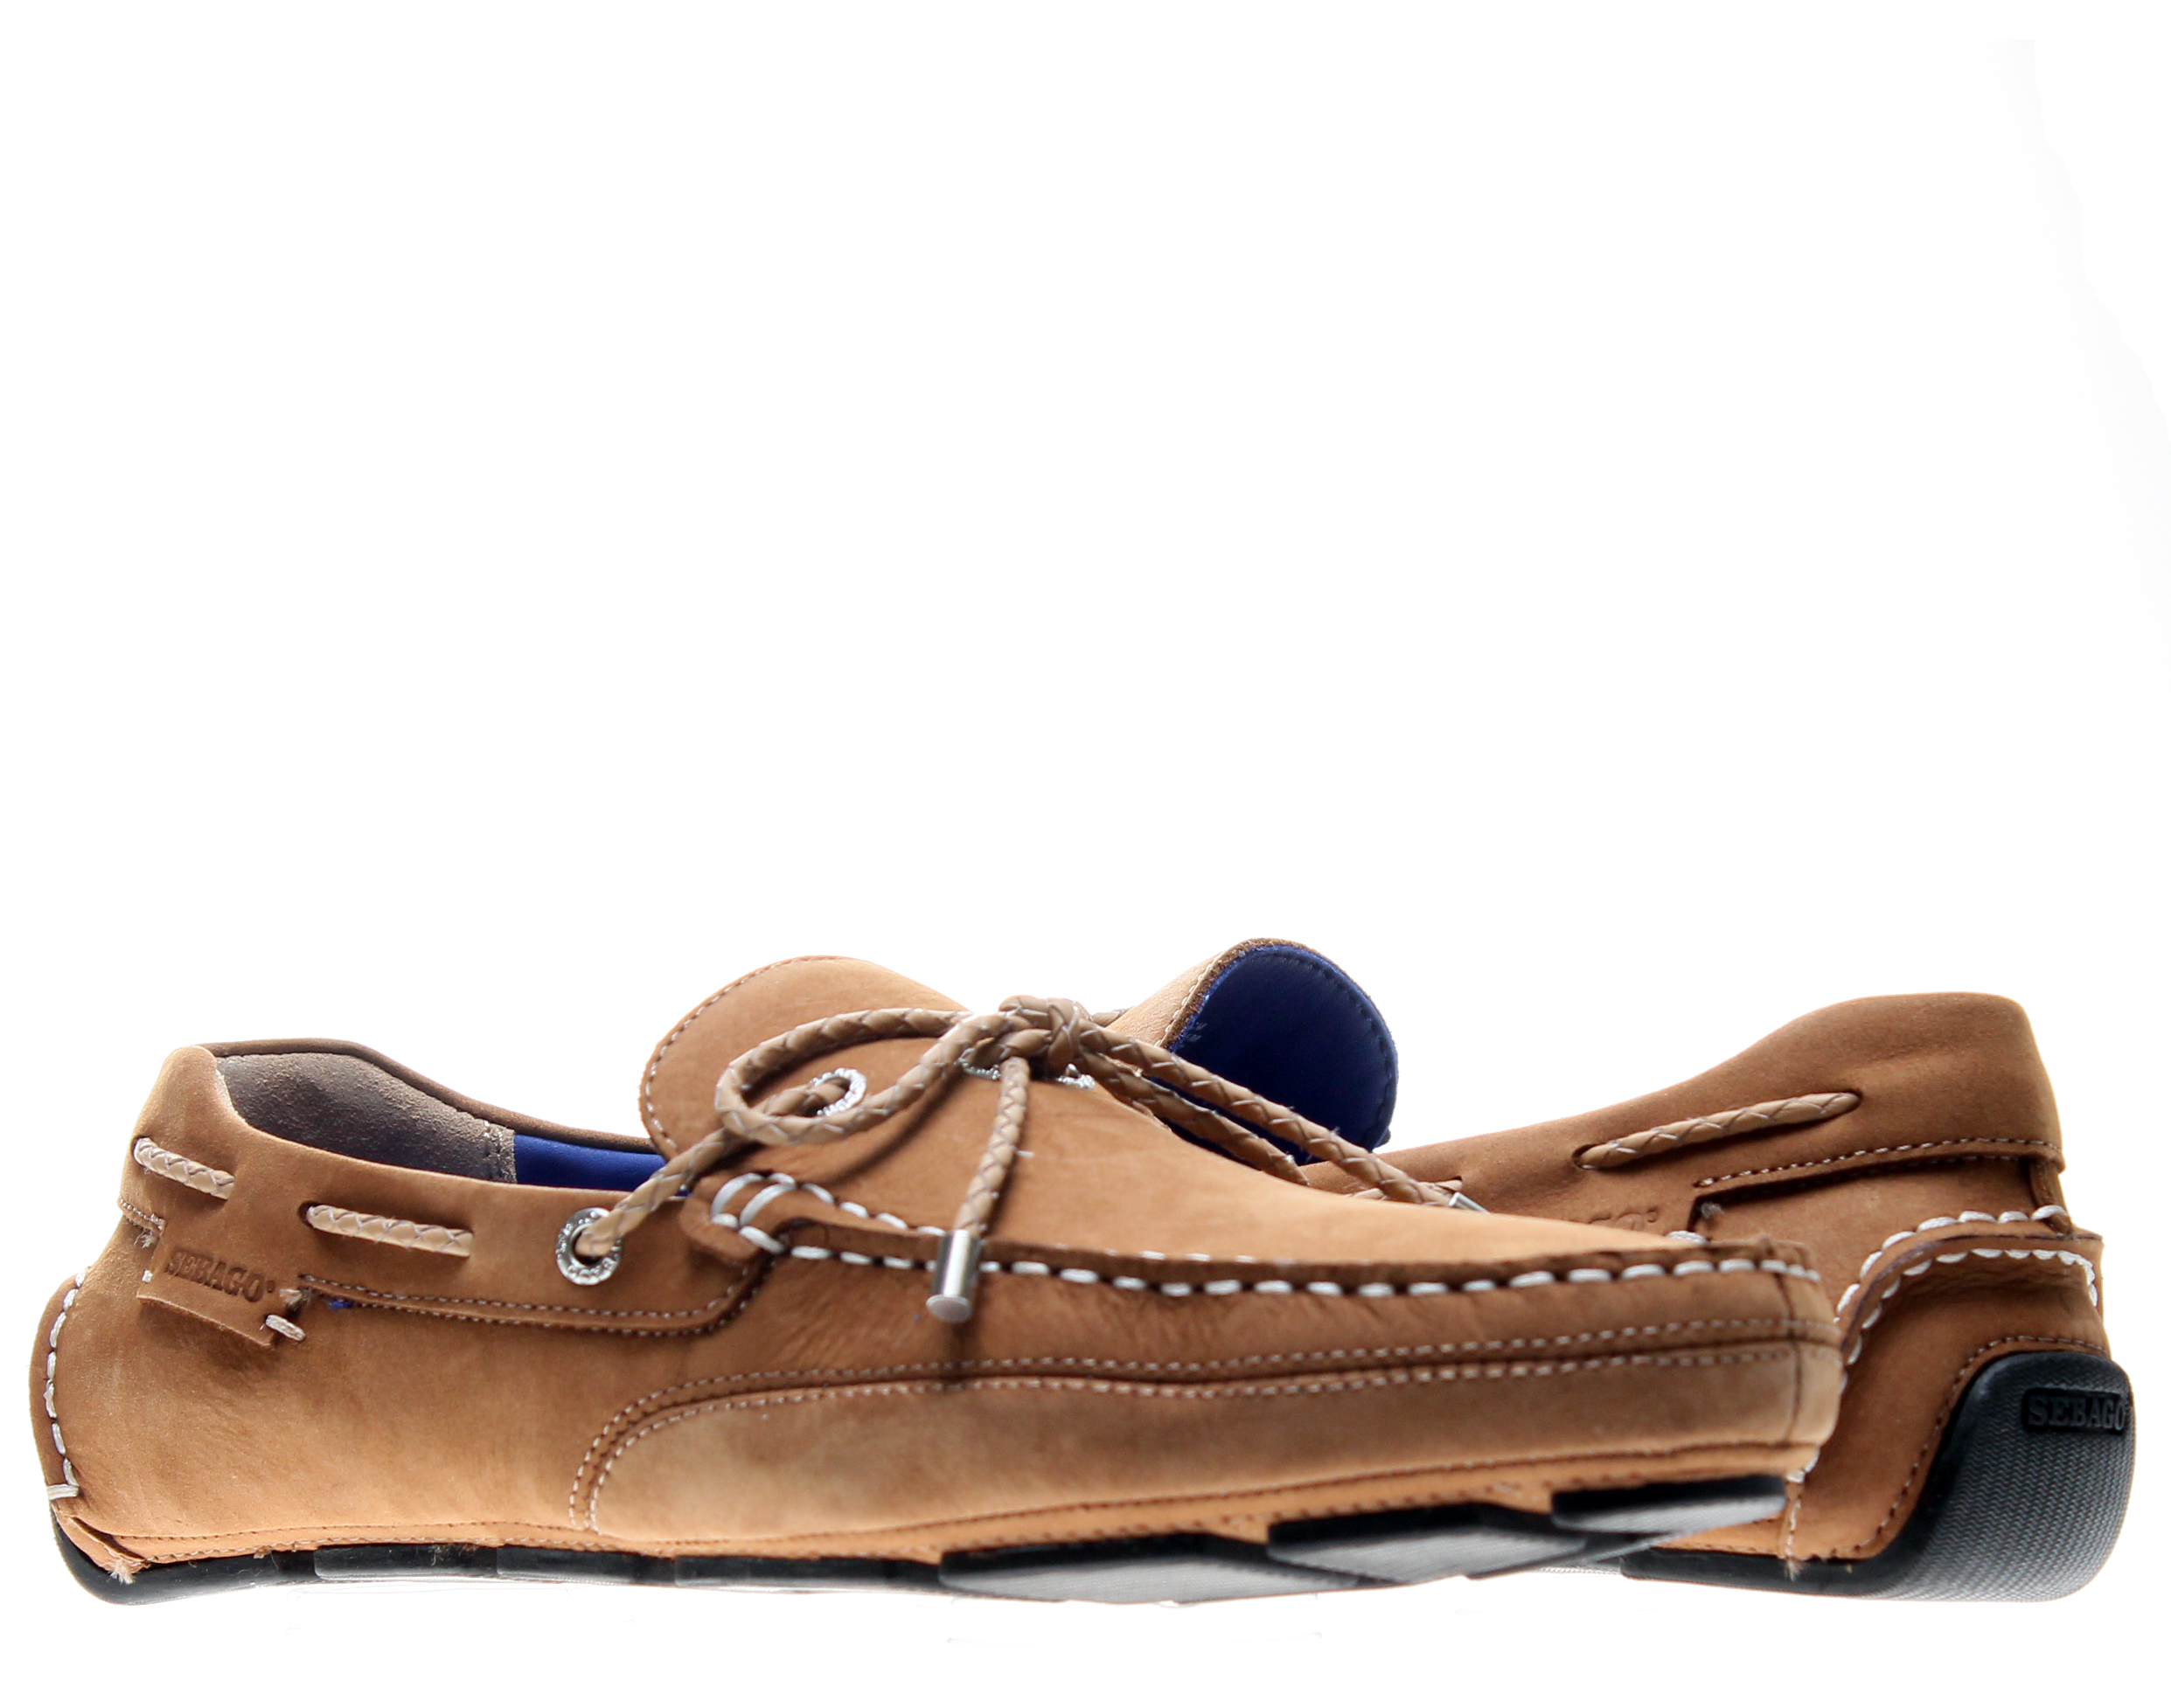 Sebago Kedge Tie Tan Nubuck Men's Boat Shoes B810107 by